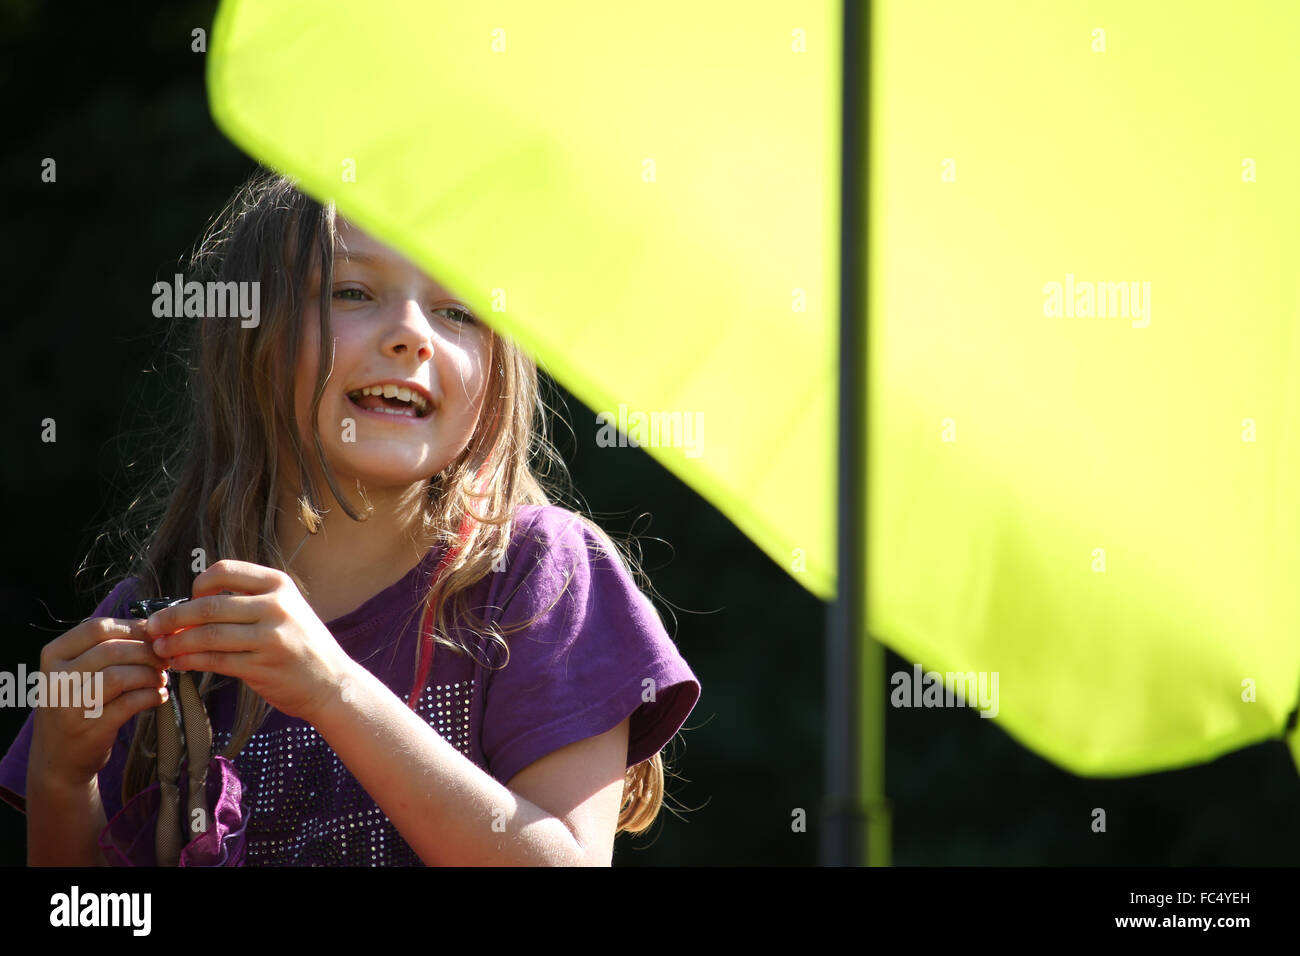 child and parasol - Stock Image